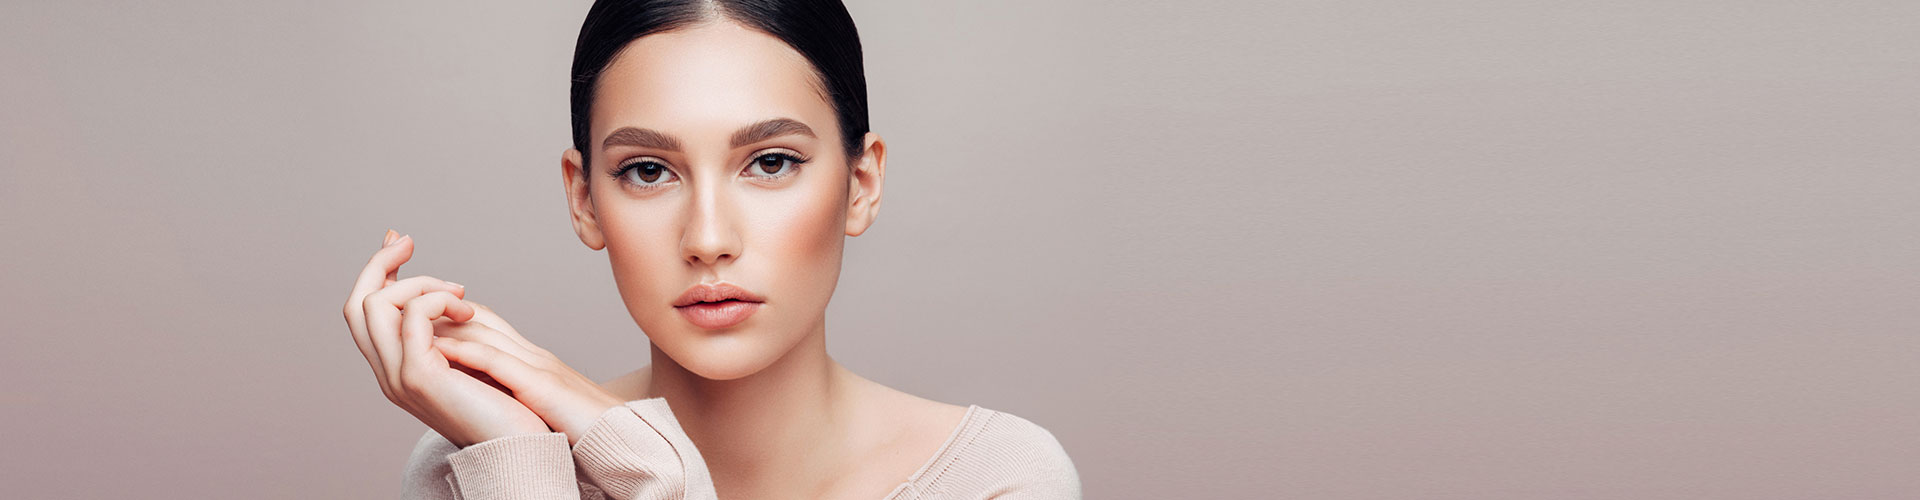 Non-surgical Eyelid Treatments